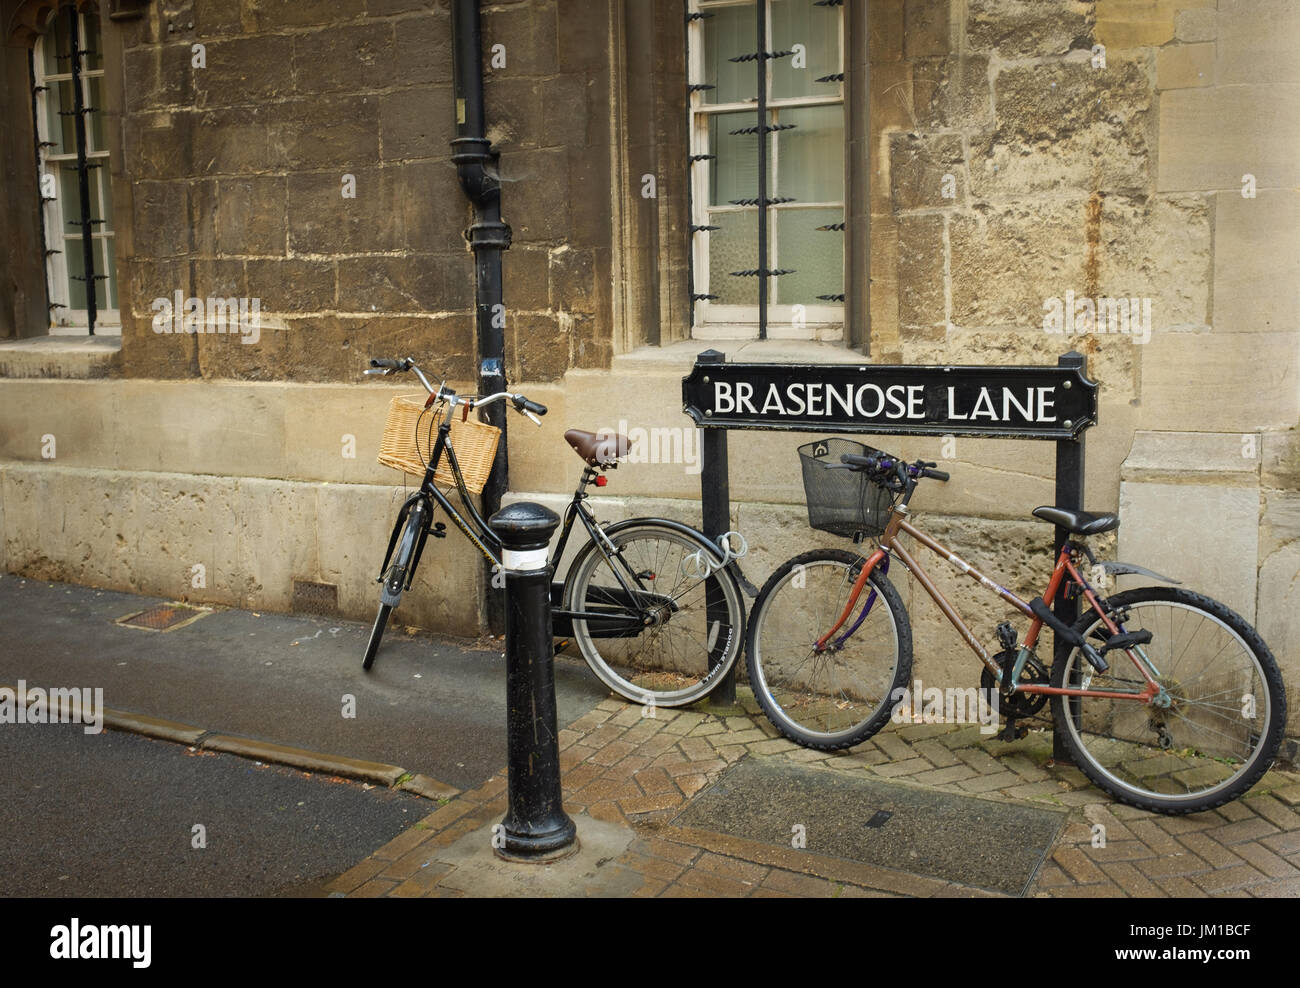 Brasenose Lane, Oxford - Stock Image